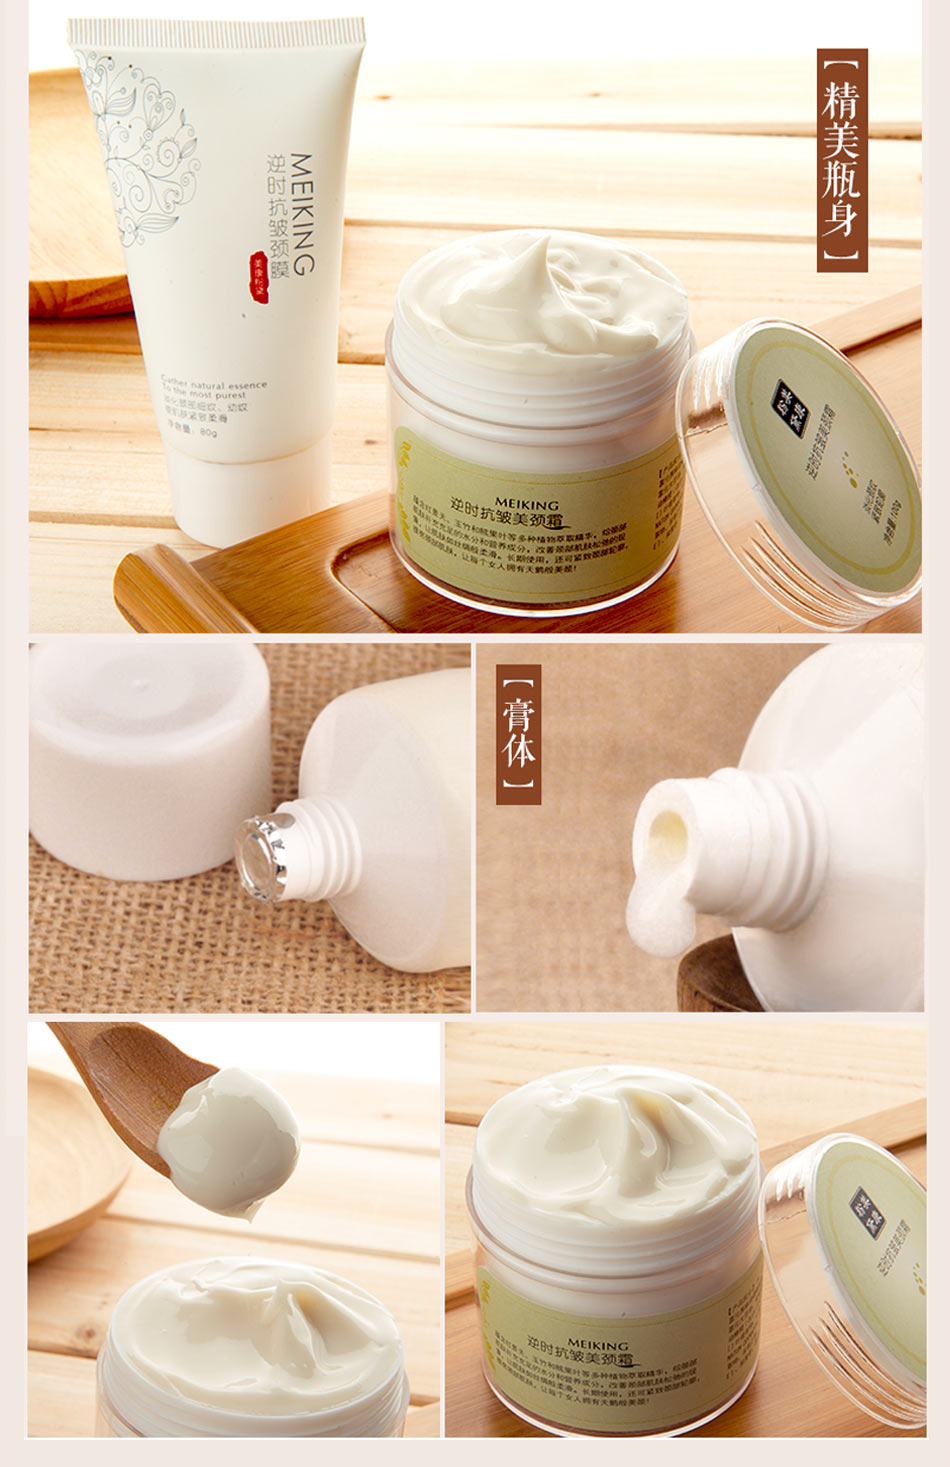 MEIKING Neck Mask Neck Cream Skincare Anti wrinkle Whitening Moisturizing Nourishing Firming Neck Care Set Skin Care Set 180g 12